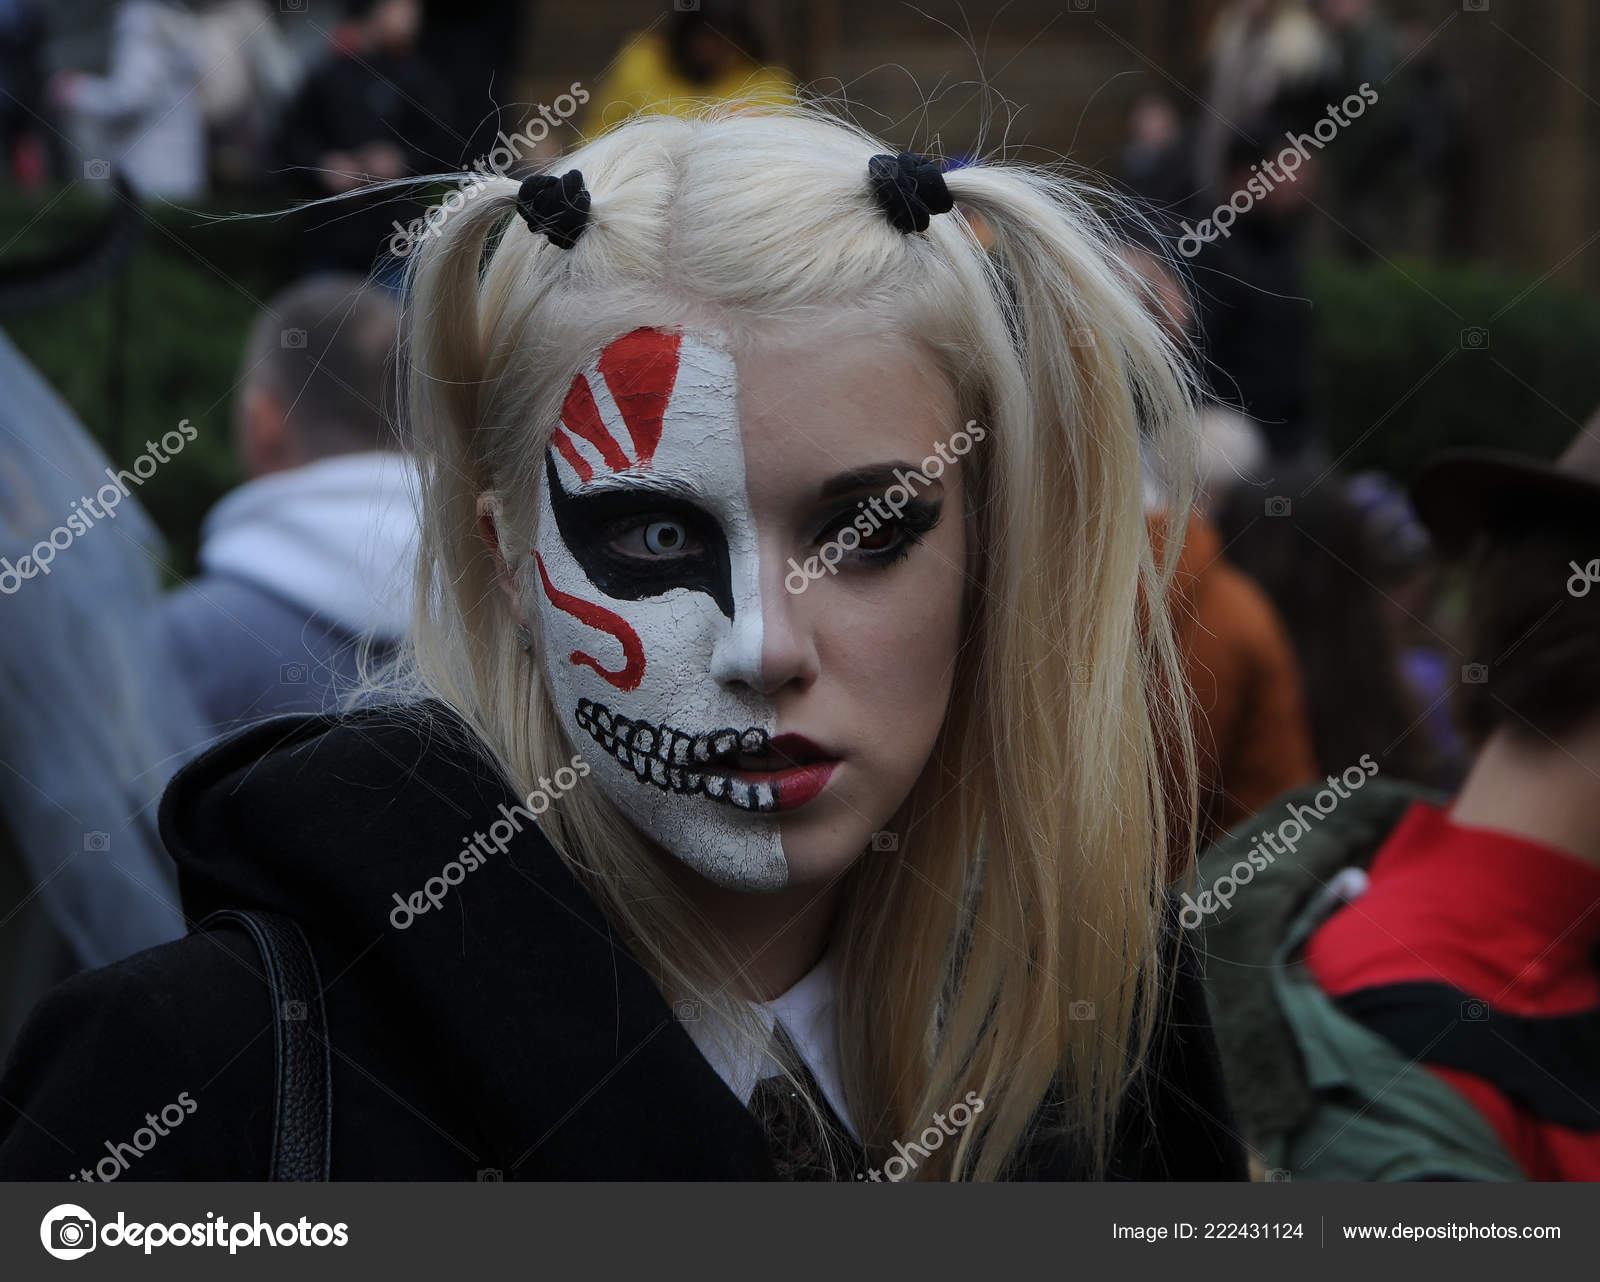 Young Woman Wearing Demonic Costume Make Takes Part Halloween Zombie Stock Editorial Photo C Fotos123 222431124